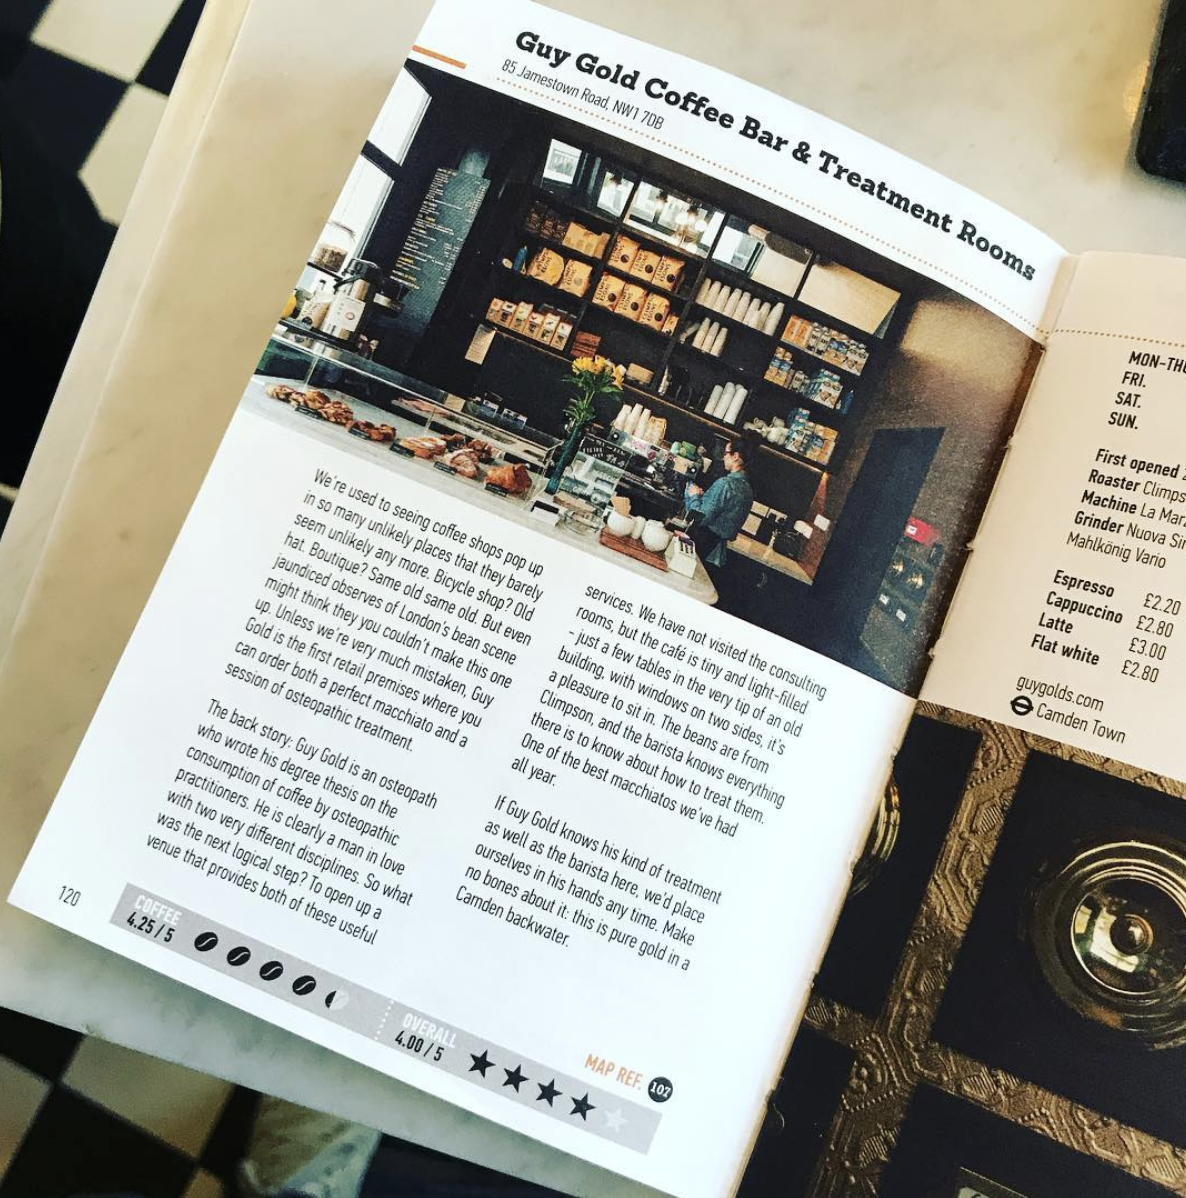 An image of the London Coffee Guide, open to a page showing Guy Gold's Osteopathy Practice and Coffee Bar in Camden, London